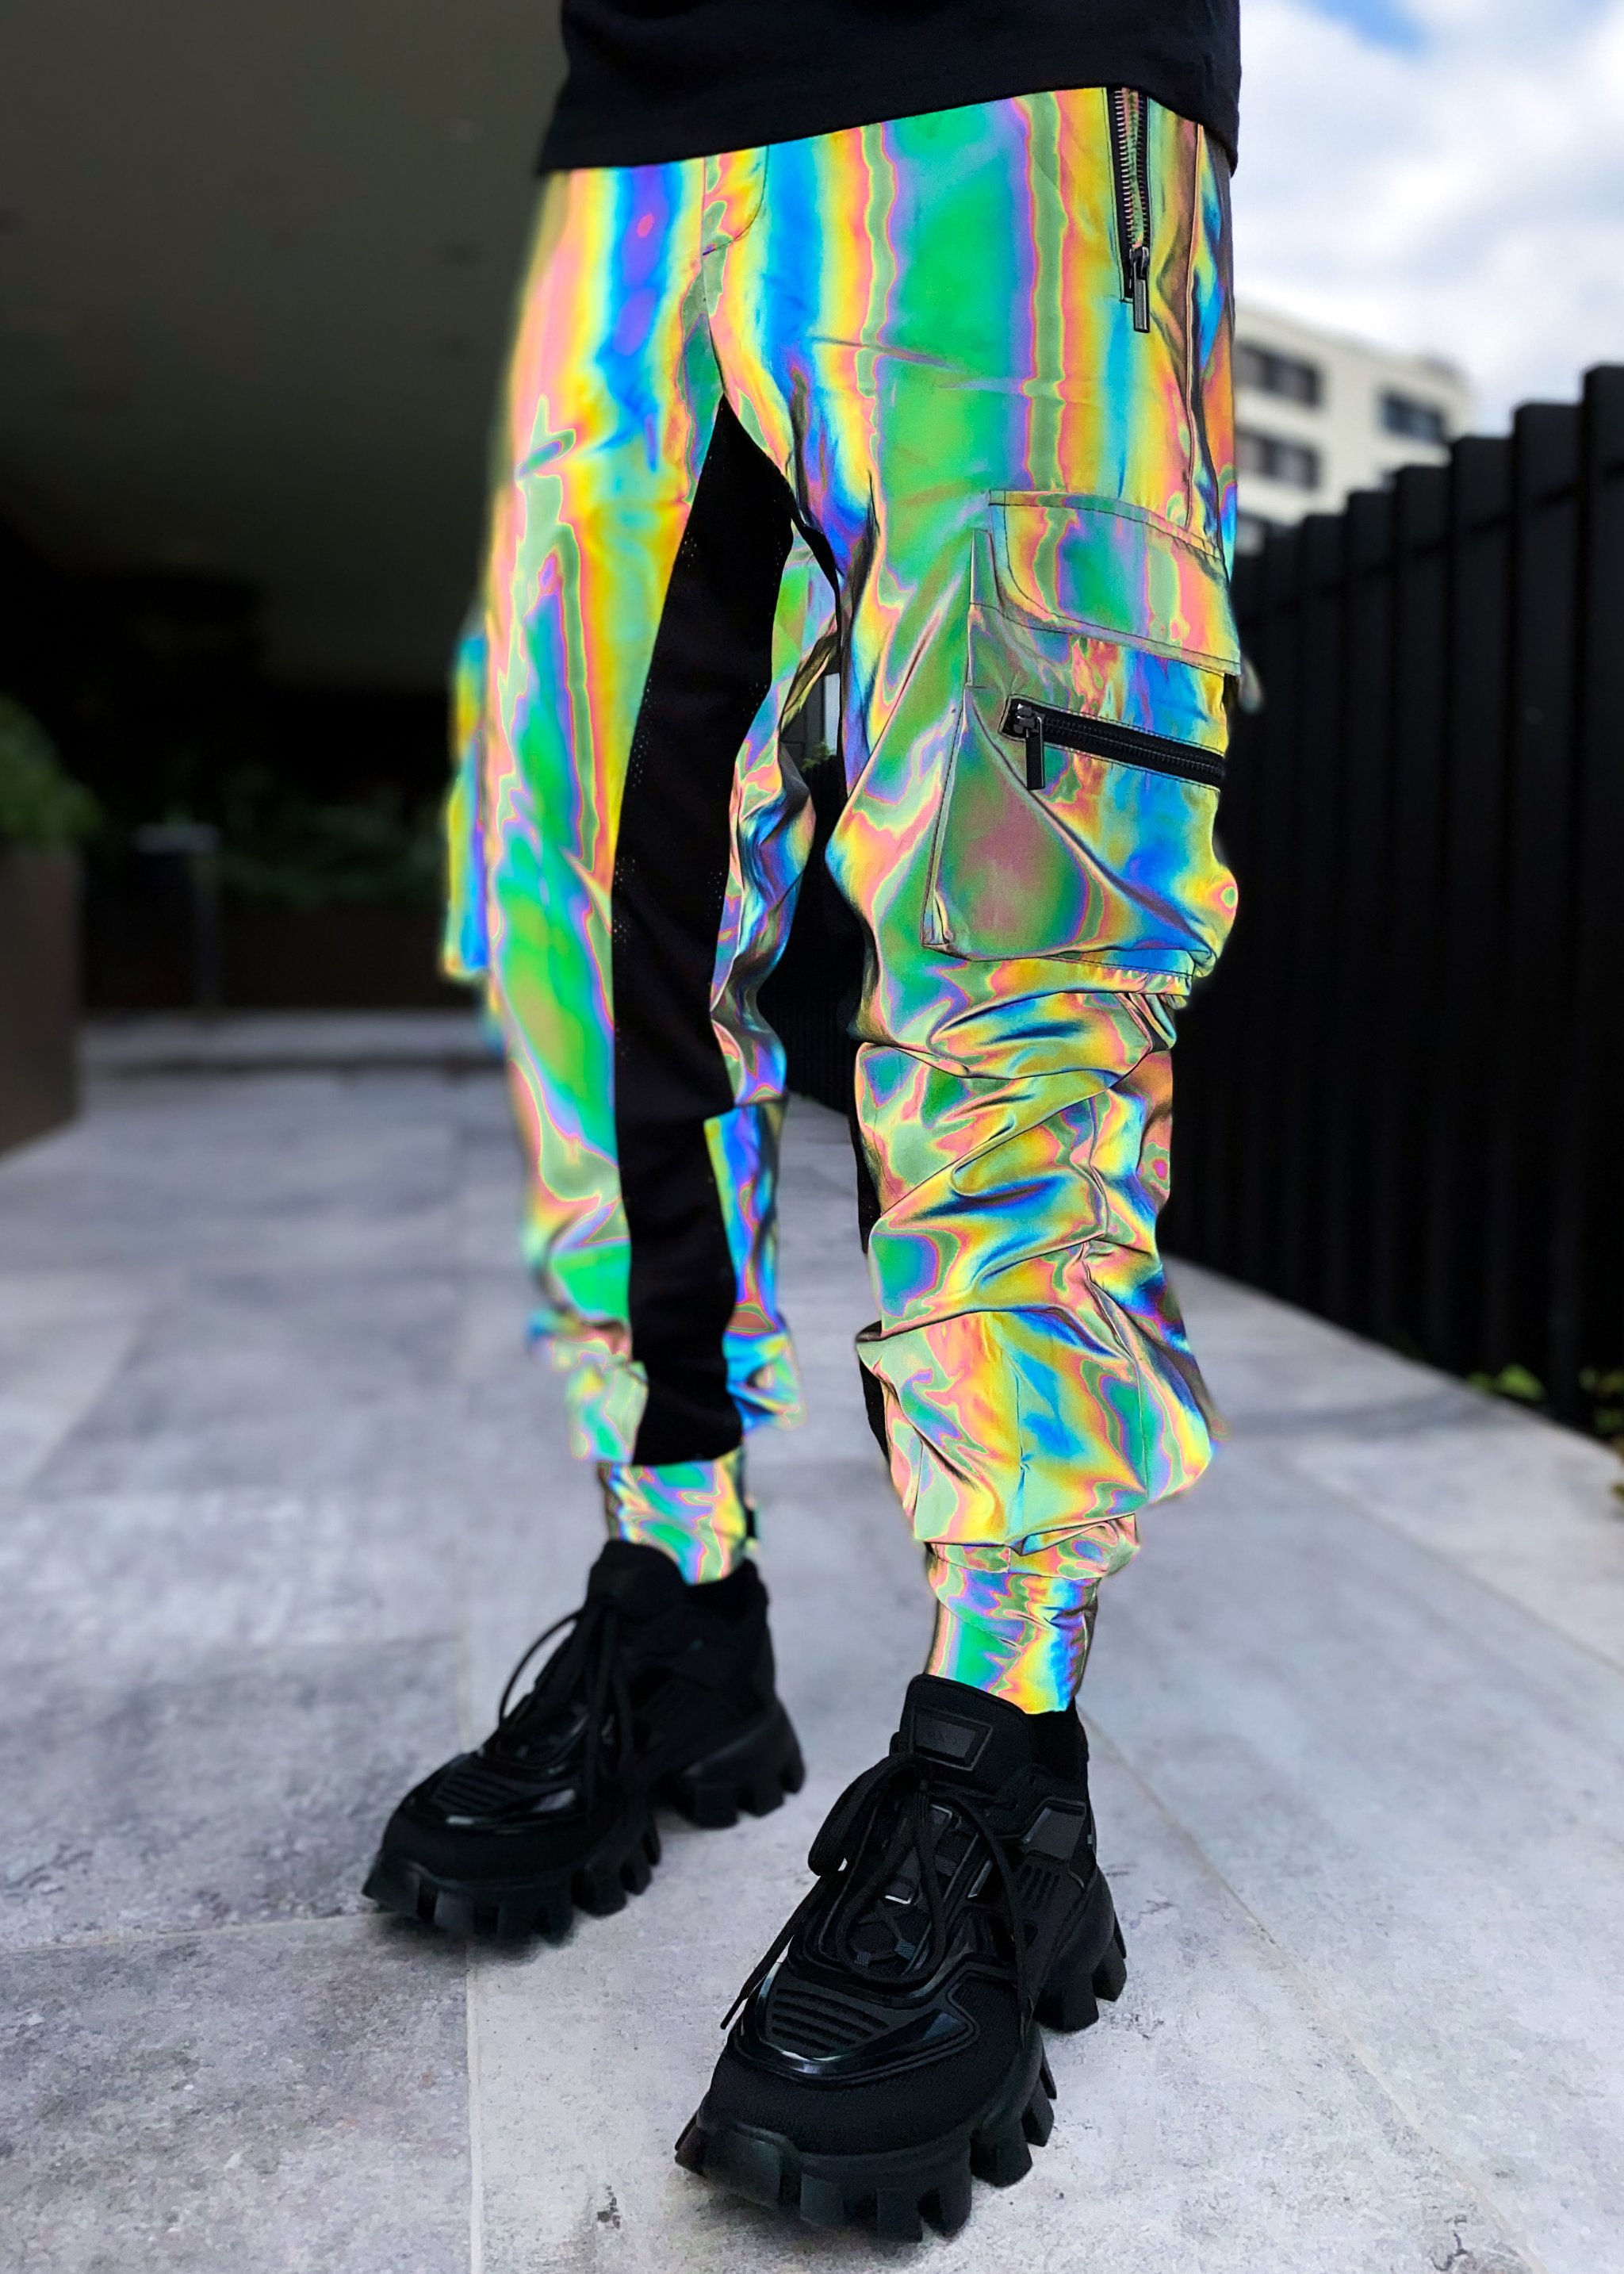 GREEN REFLECTIVE CARGO PANTS